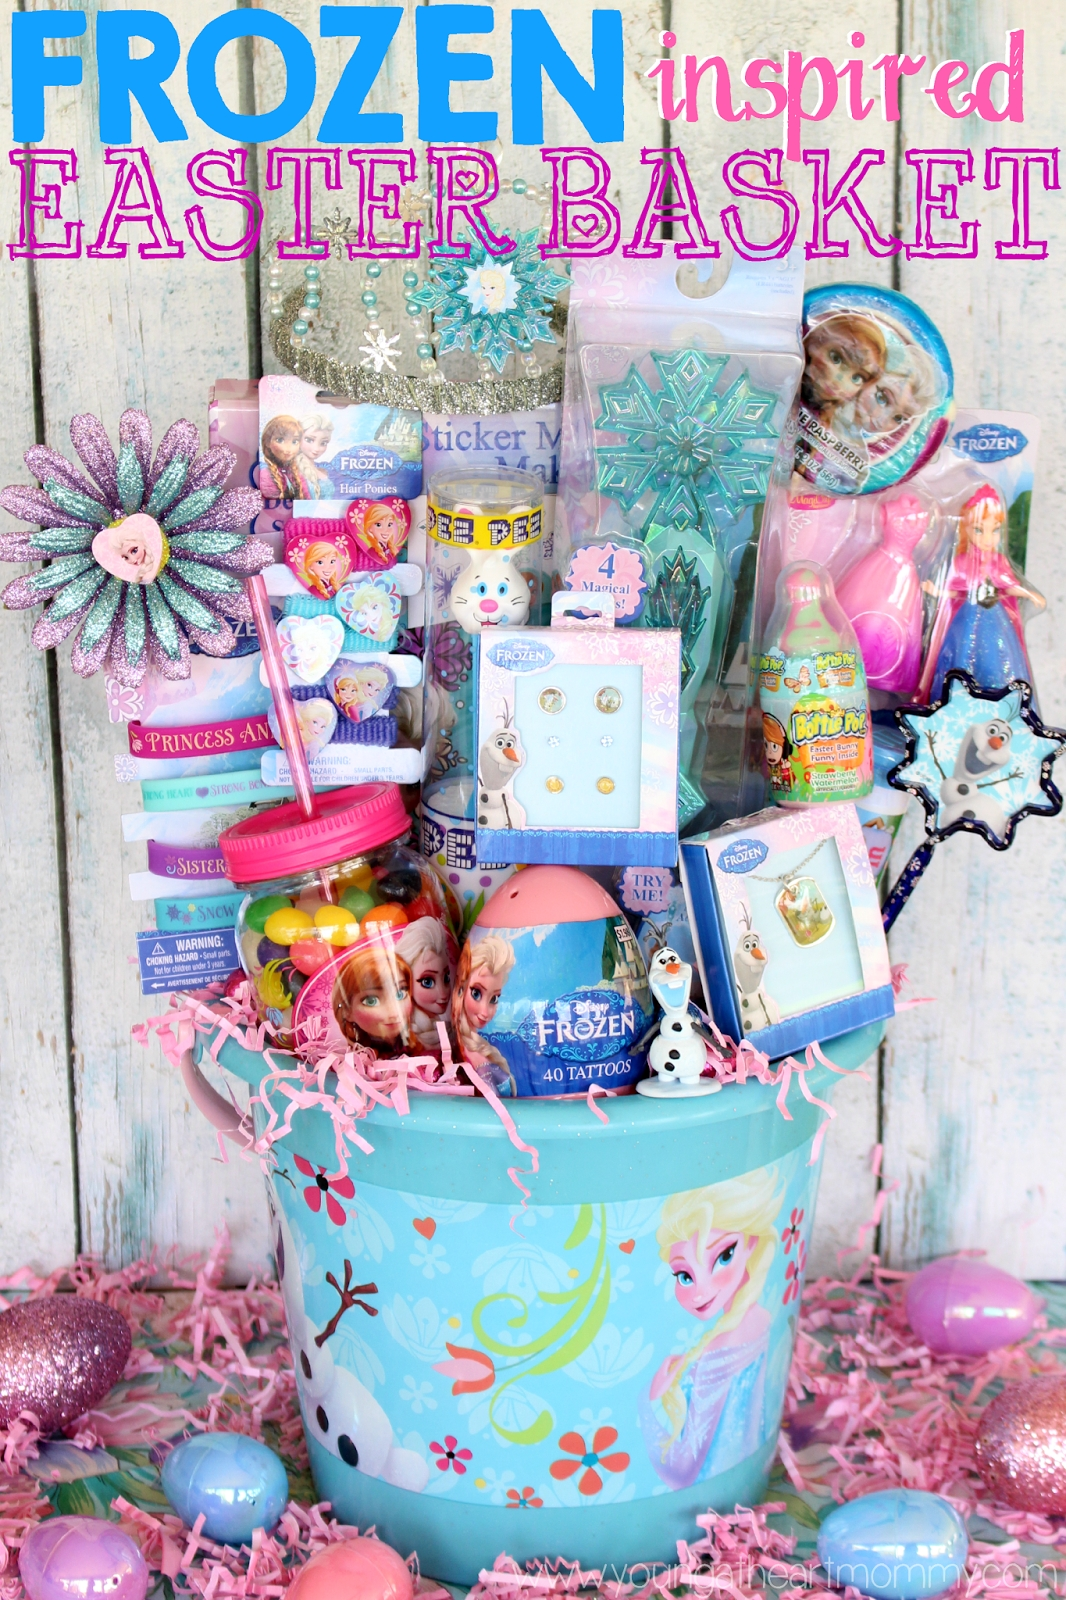 10 Ideal Ideas For Easter Basket Stuffers an easter basket fit for a frozen queen young at heart mommy 2020